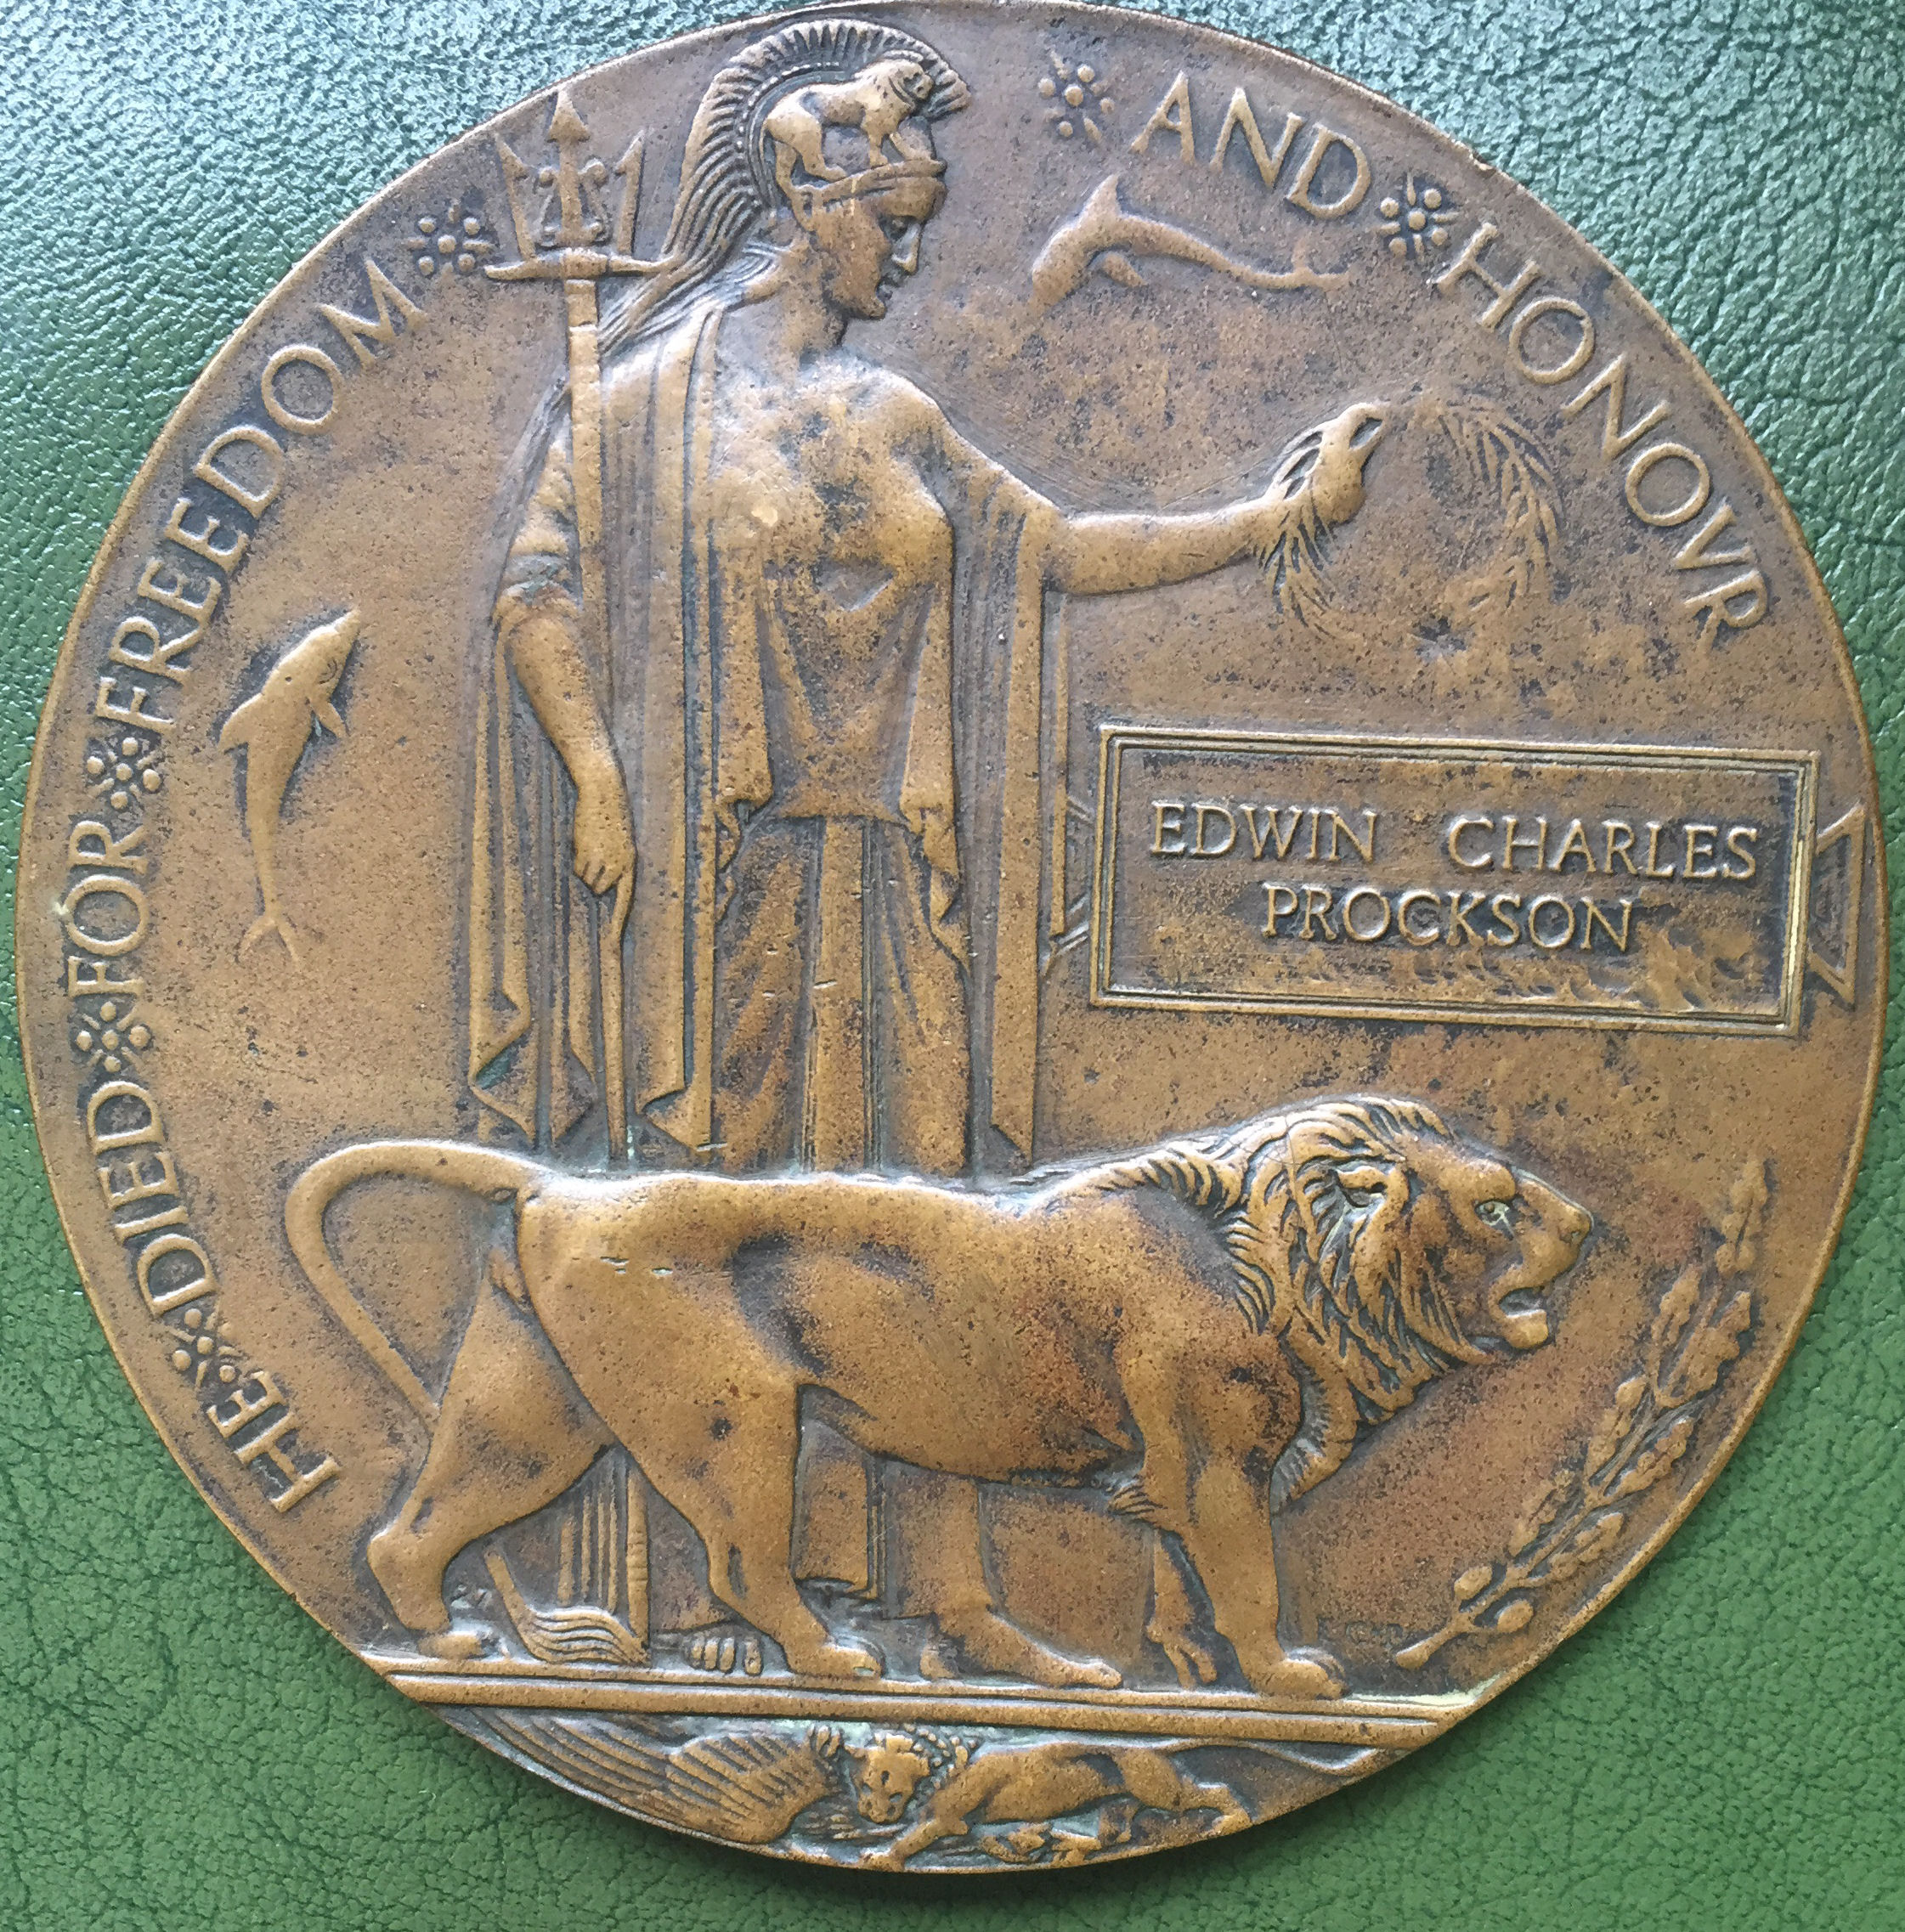 Memorial Plaque– The memorial plaque of Edwin Charles Prockson. Soon to be featured in my book on WWI